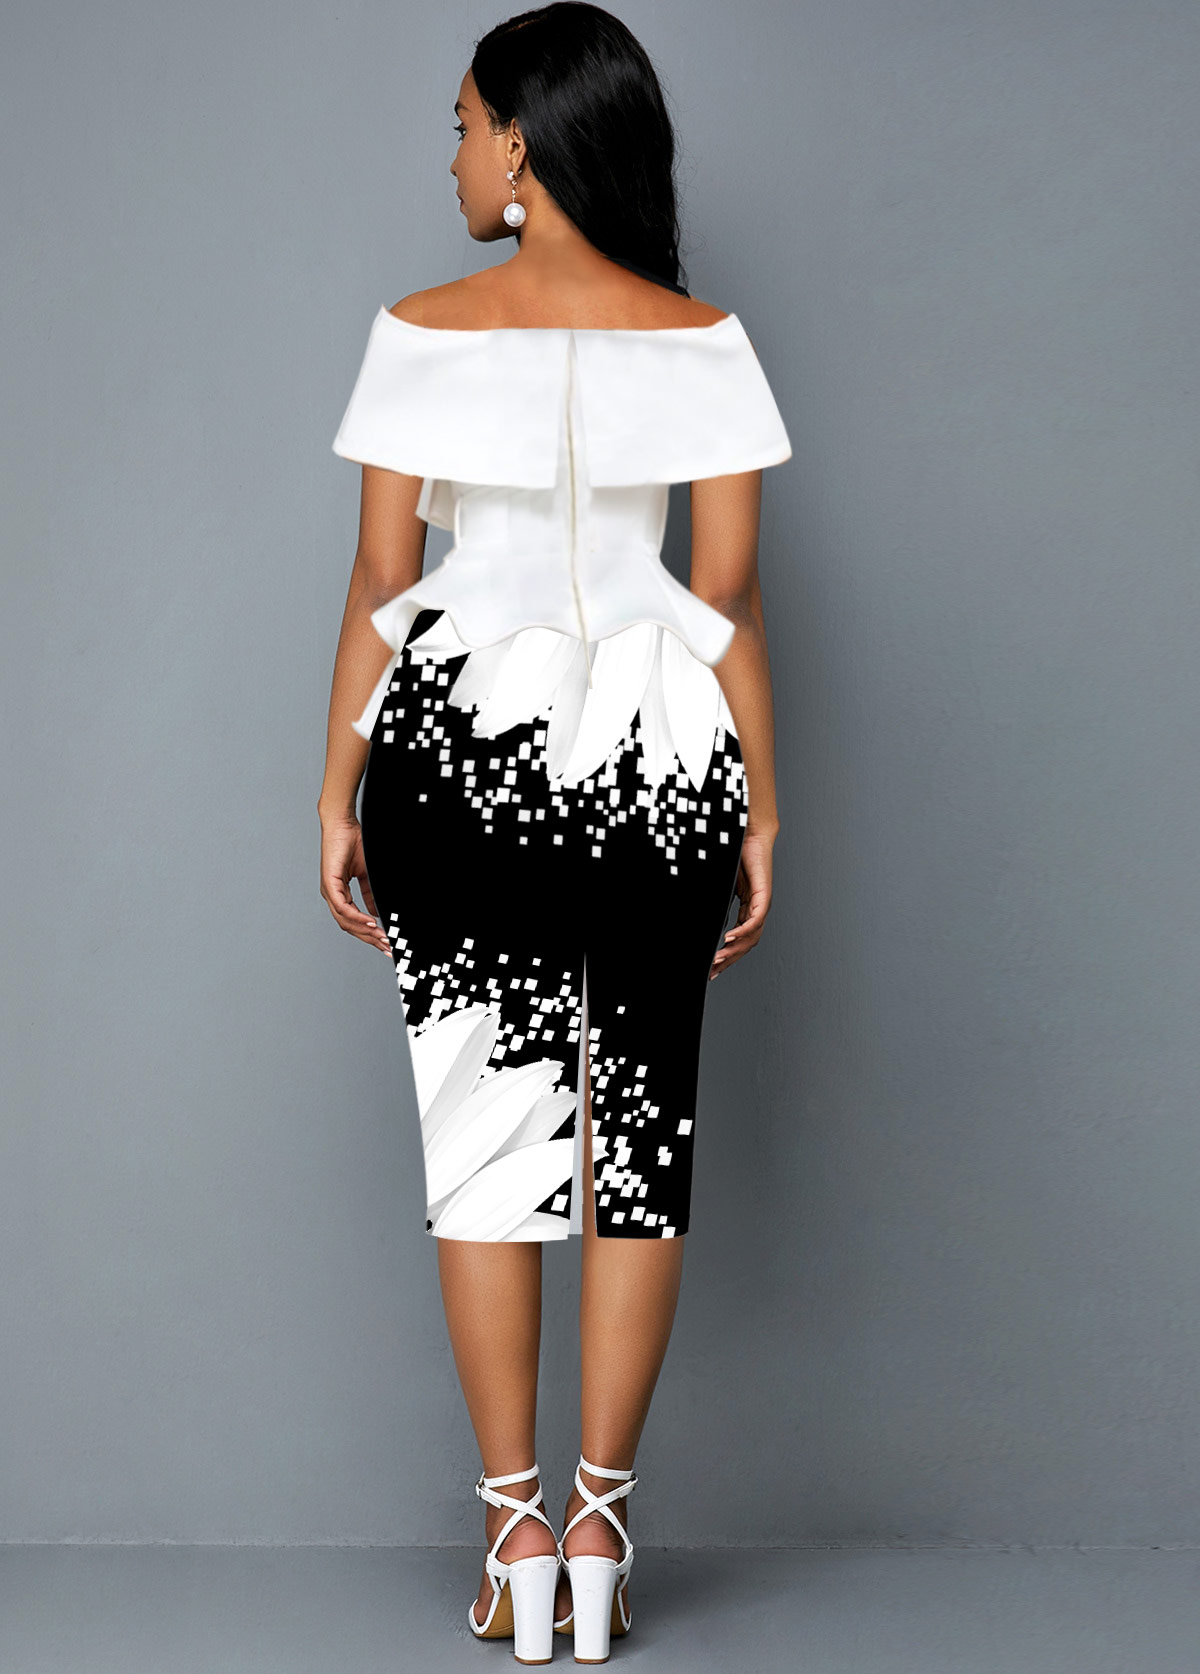 Belted Sunflower Print Off the Shoulder Foldover Dress